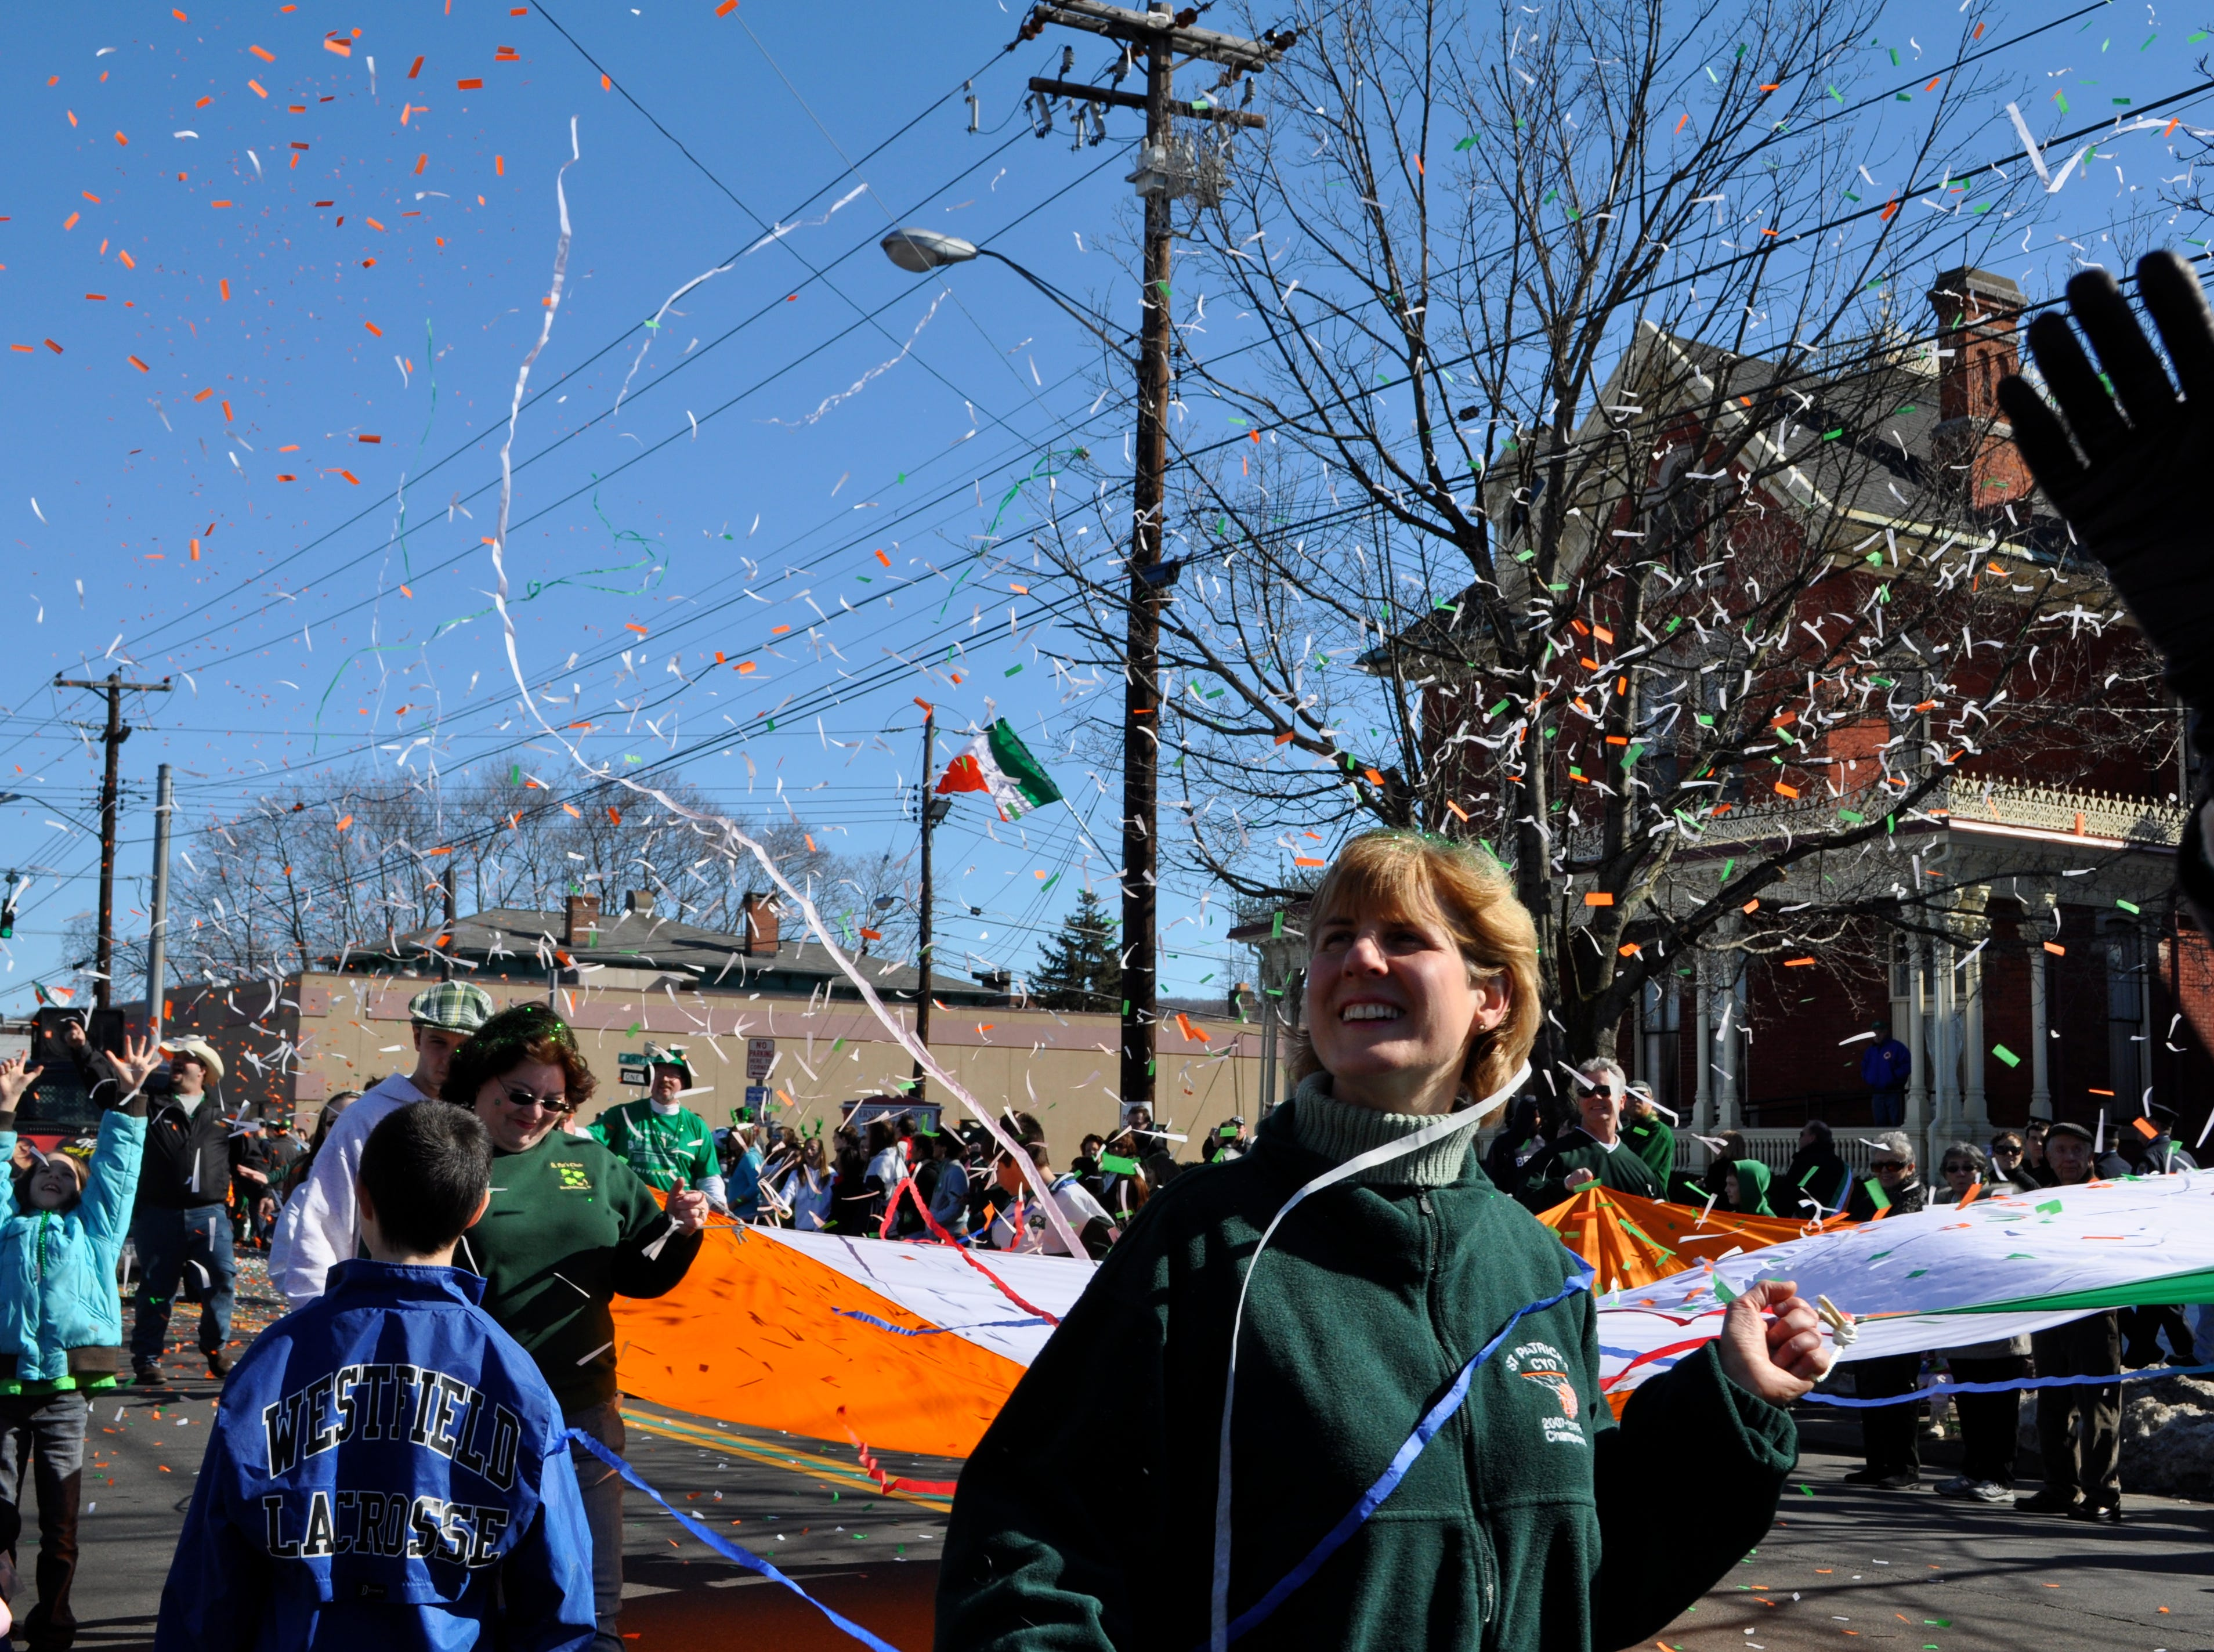 2010: Confetti fills the air Saturday at the St. Patrick's Day parade in downtown Binghamton.